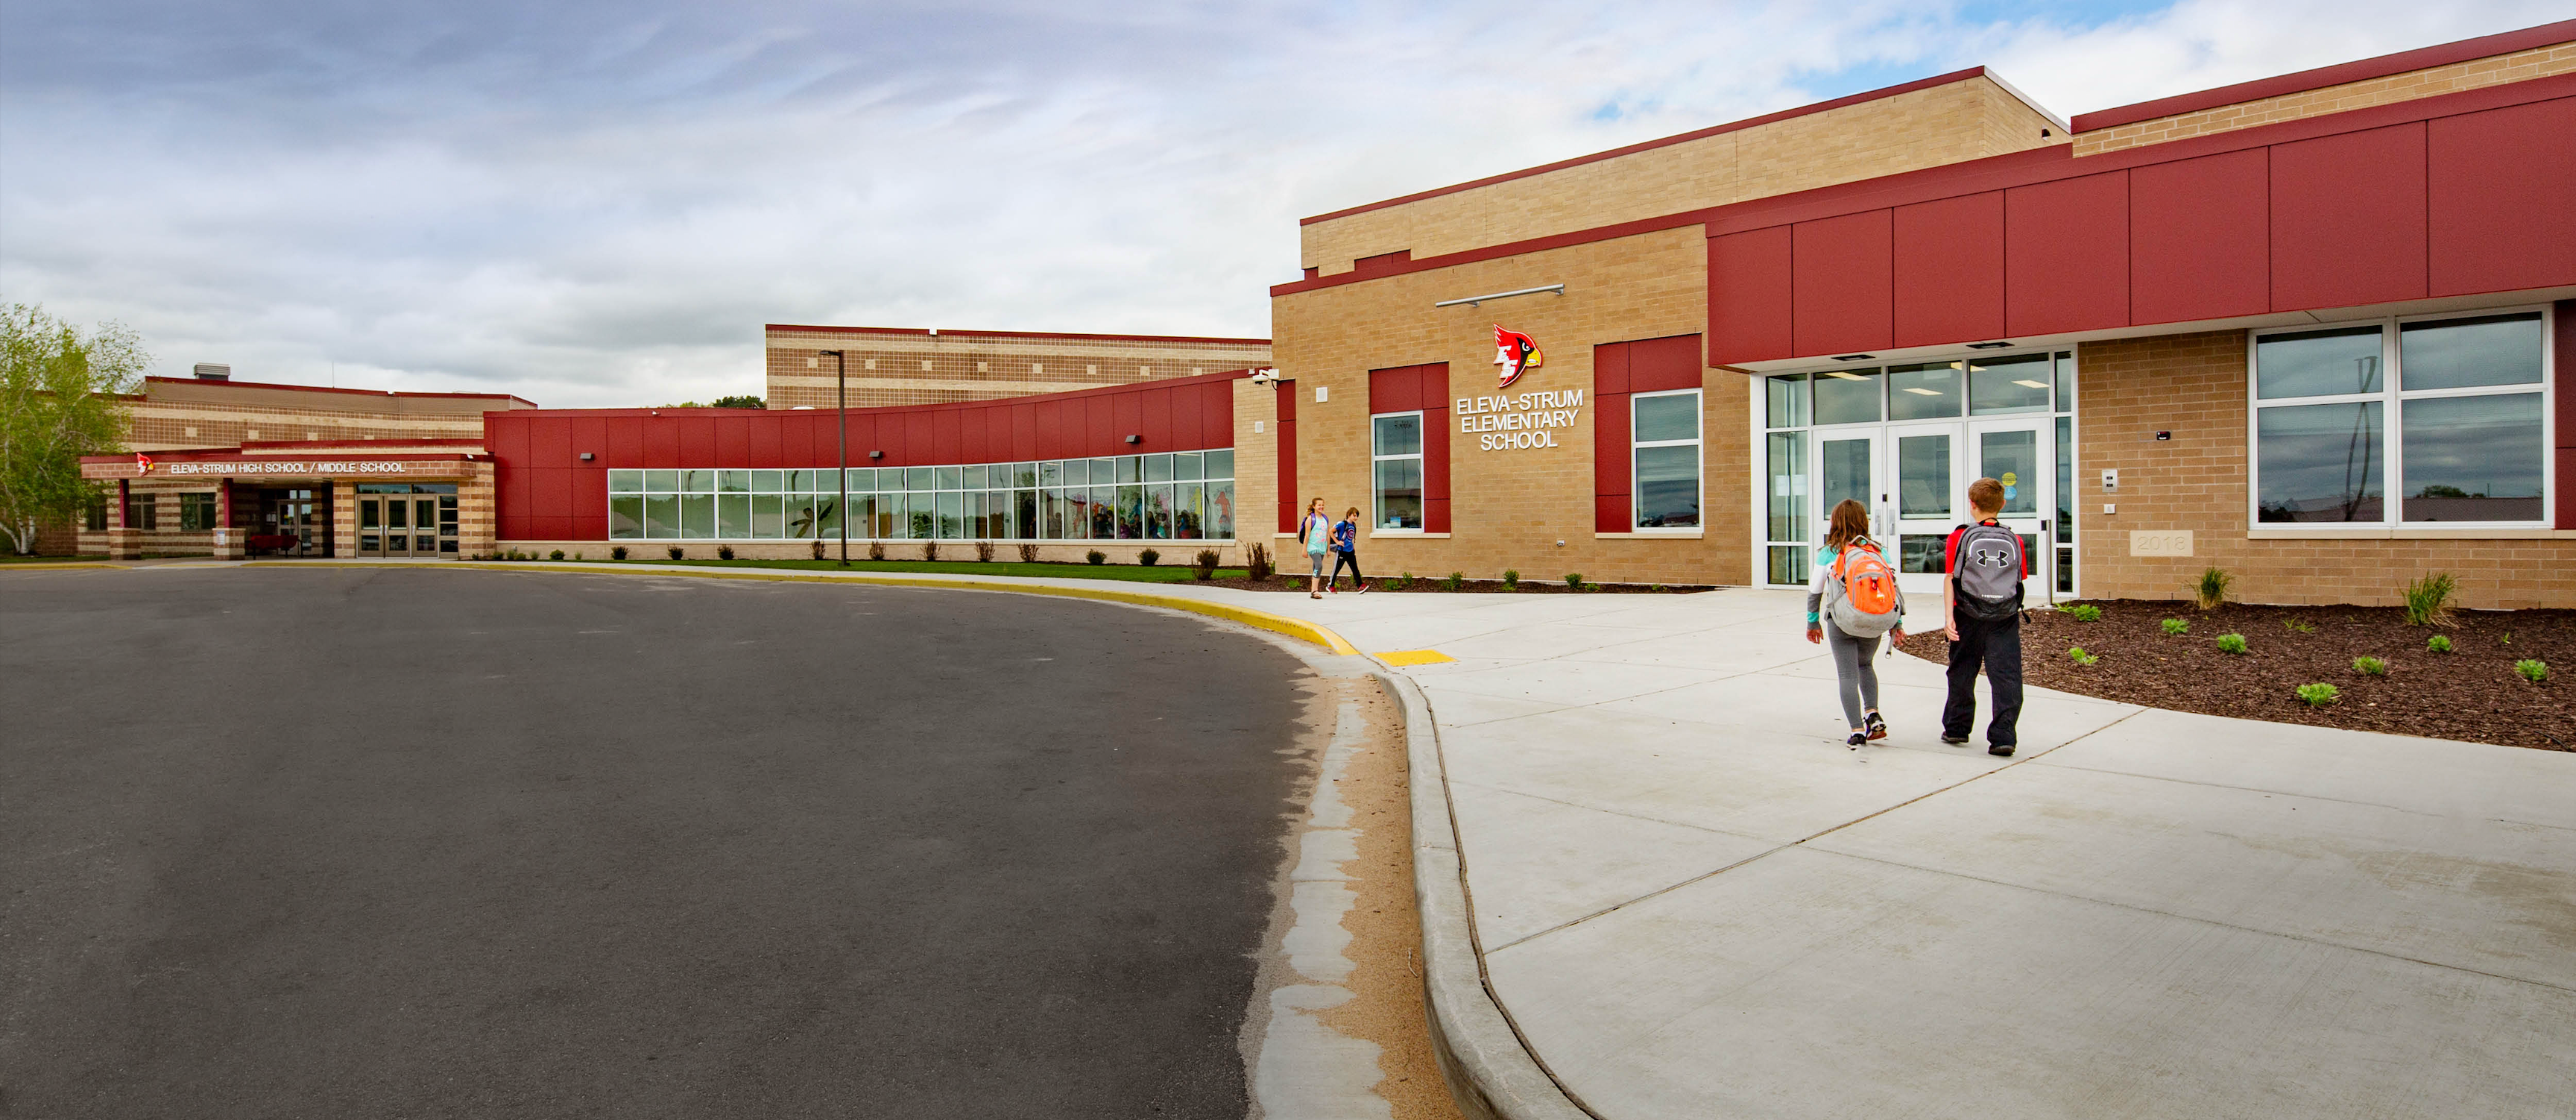 Picture of exterior of school